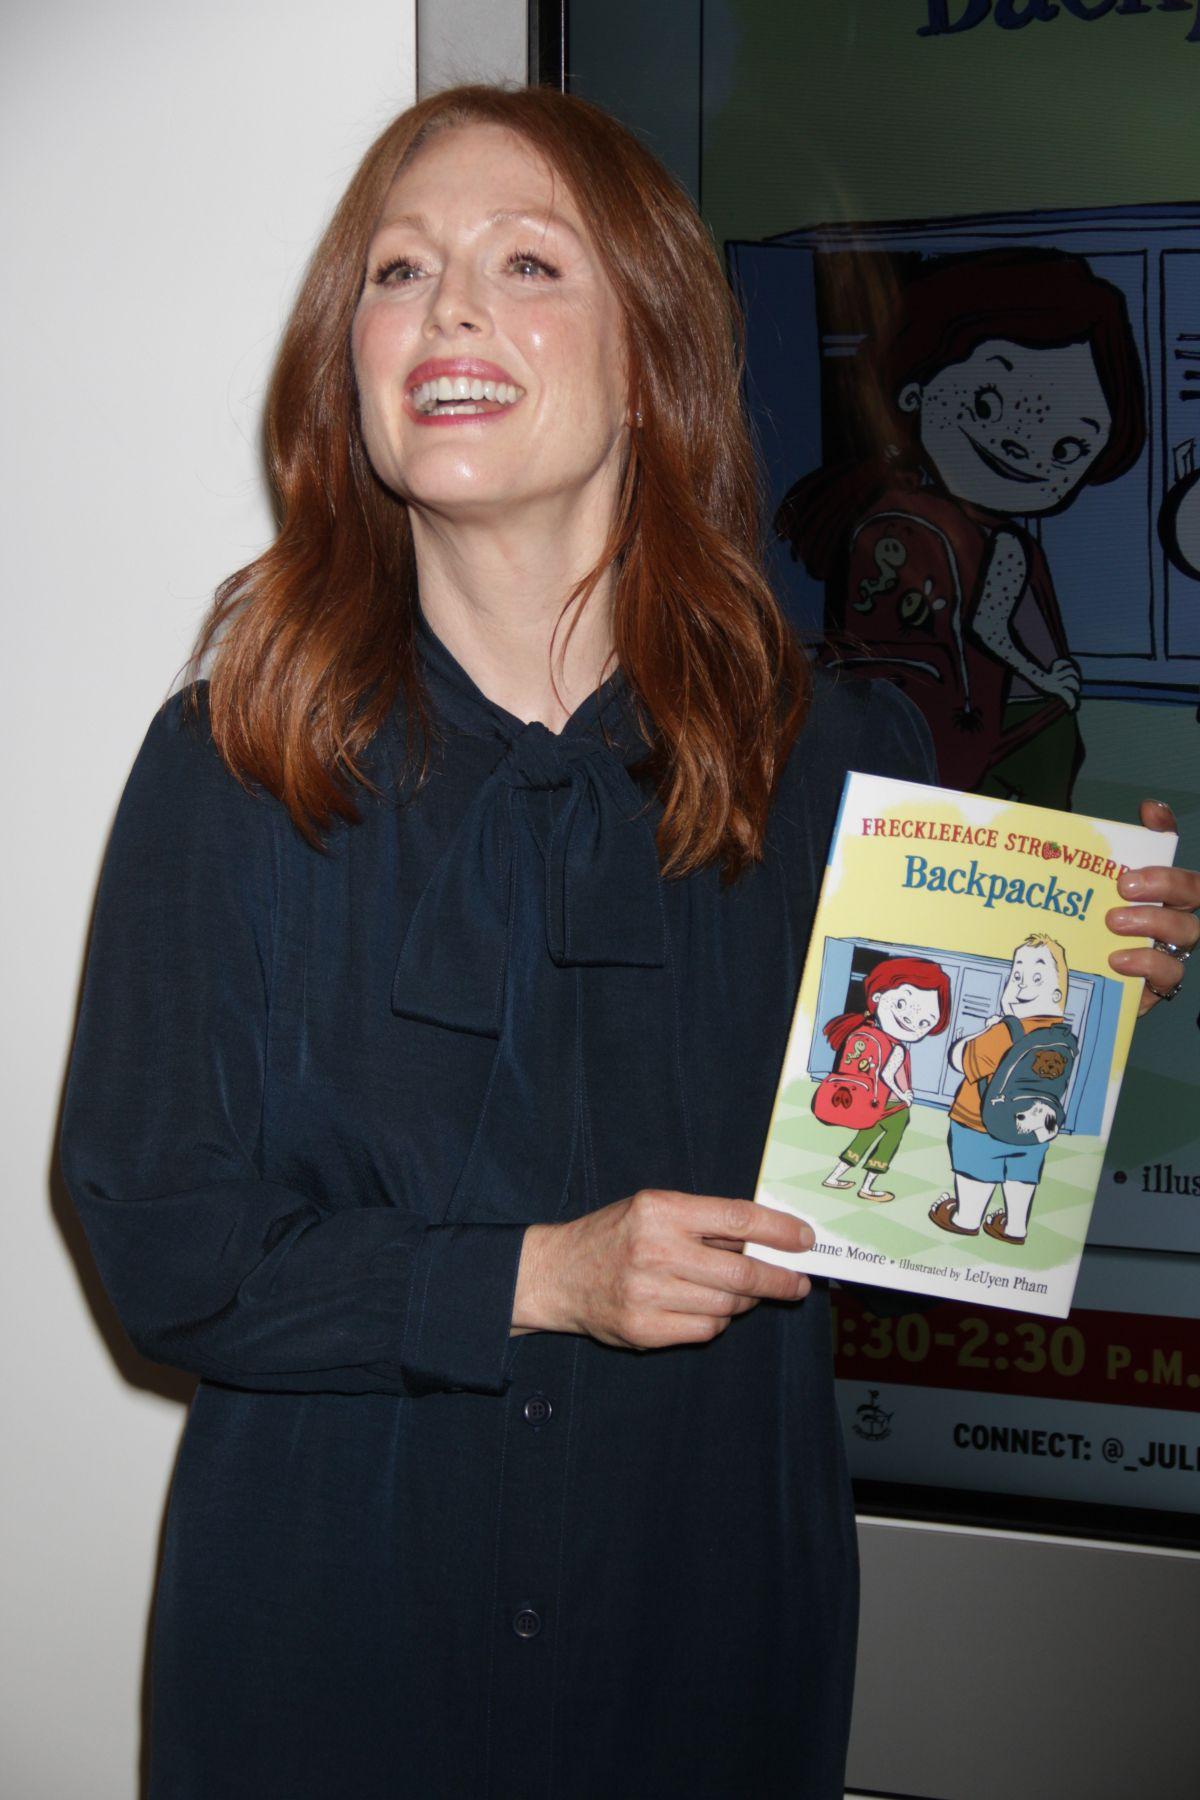 JULIANNE MOORE at Bookexpo 2015 in New York